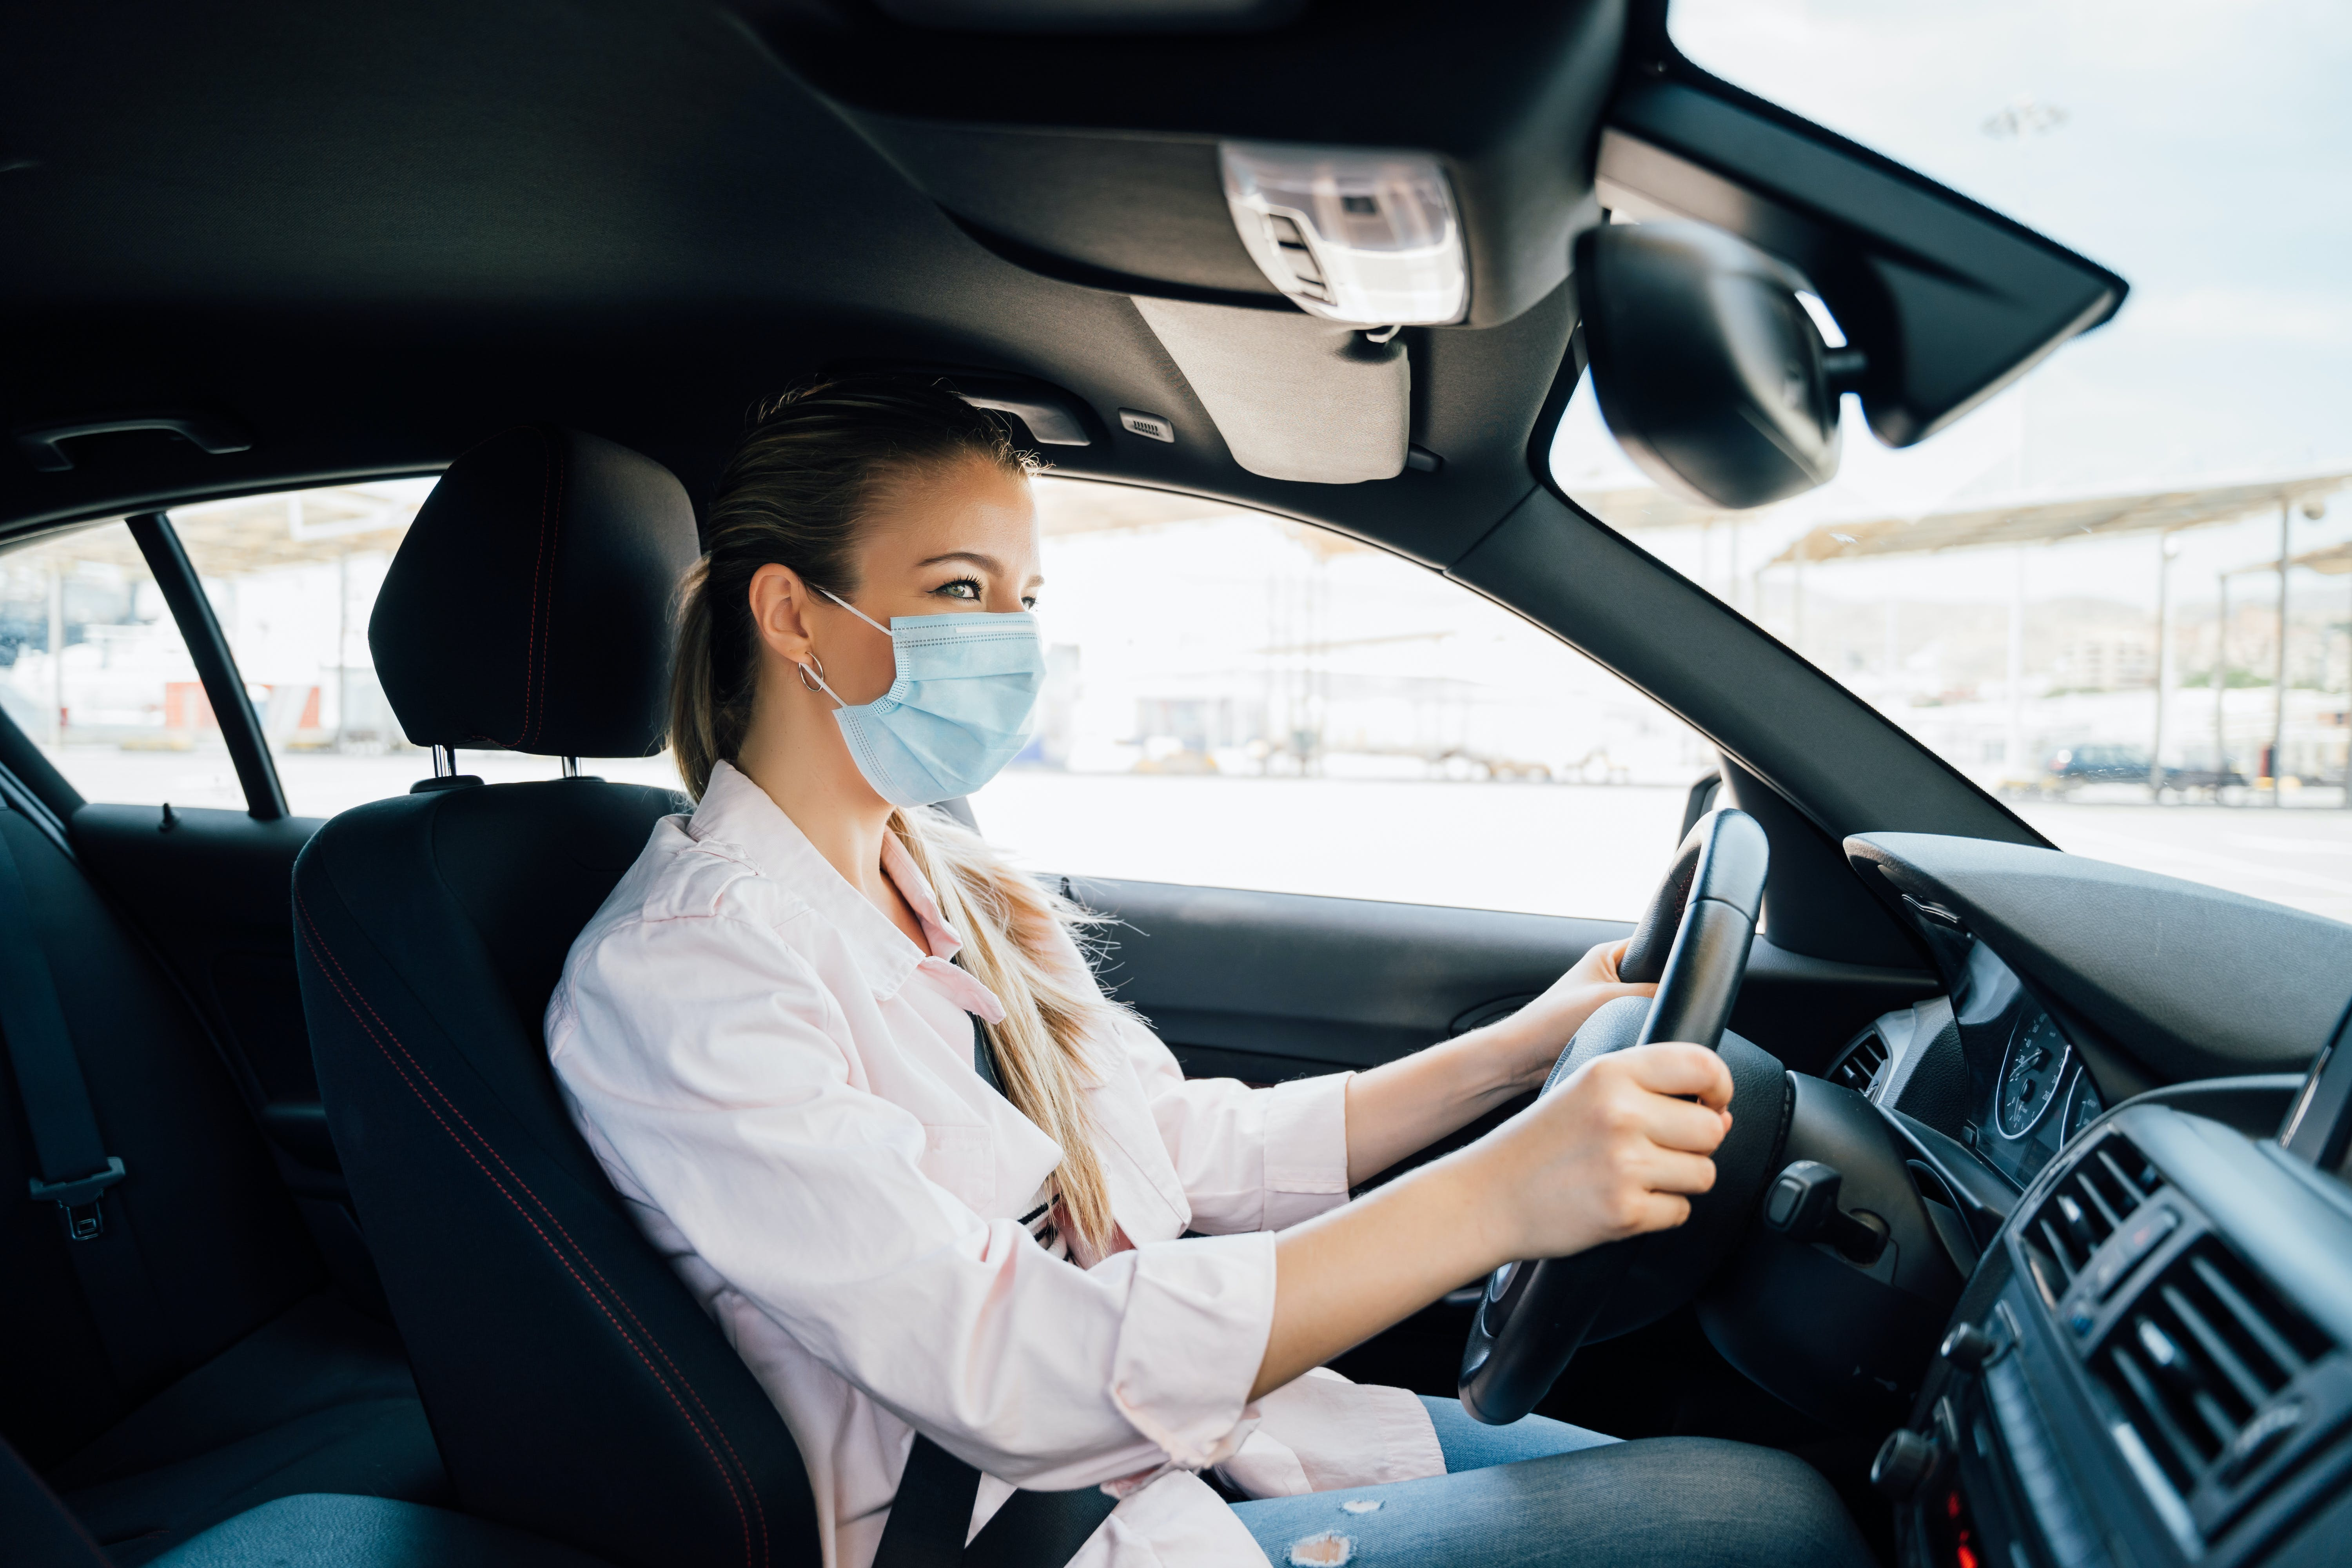 How the pandemic impacted delivery, ridesharing and micromobility